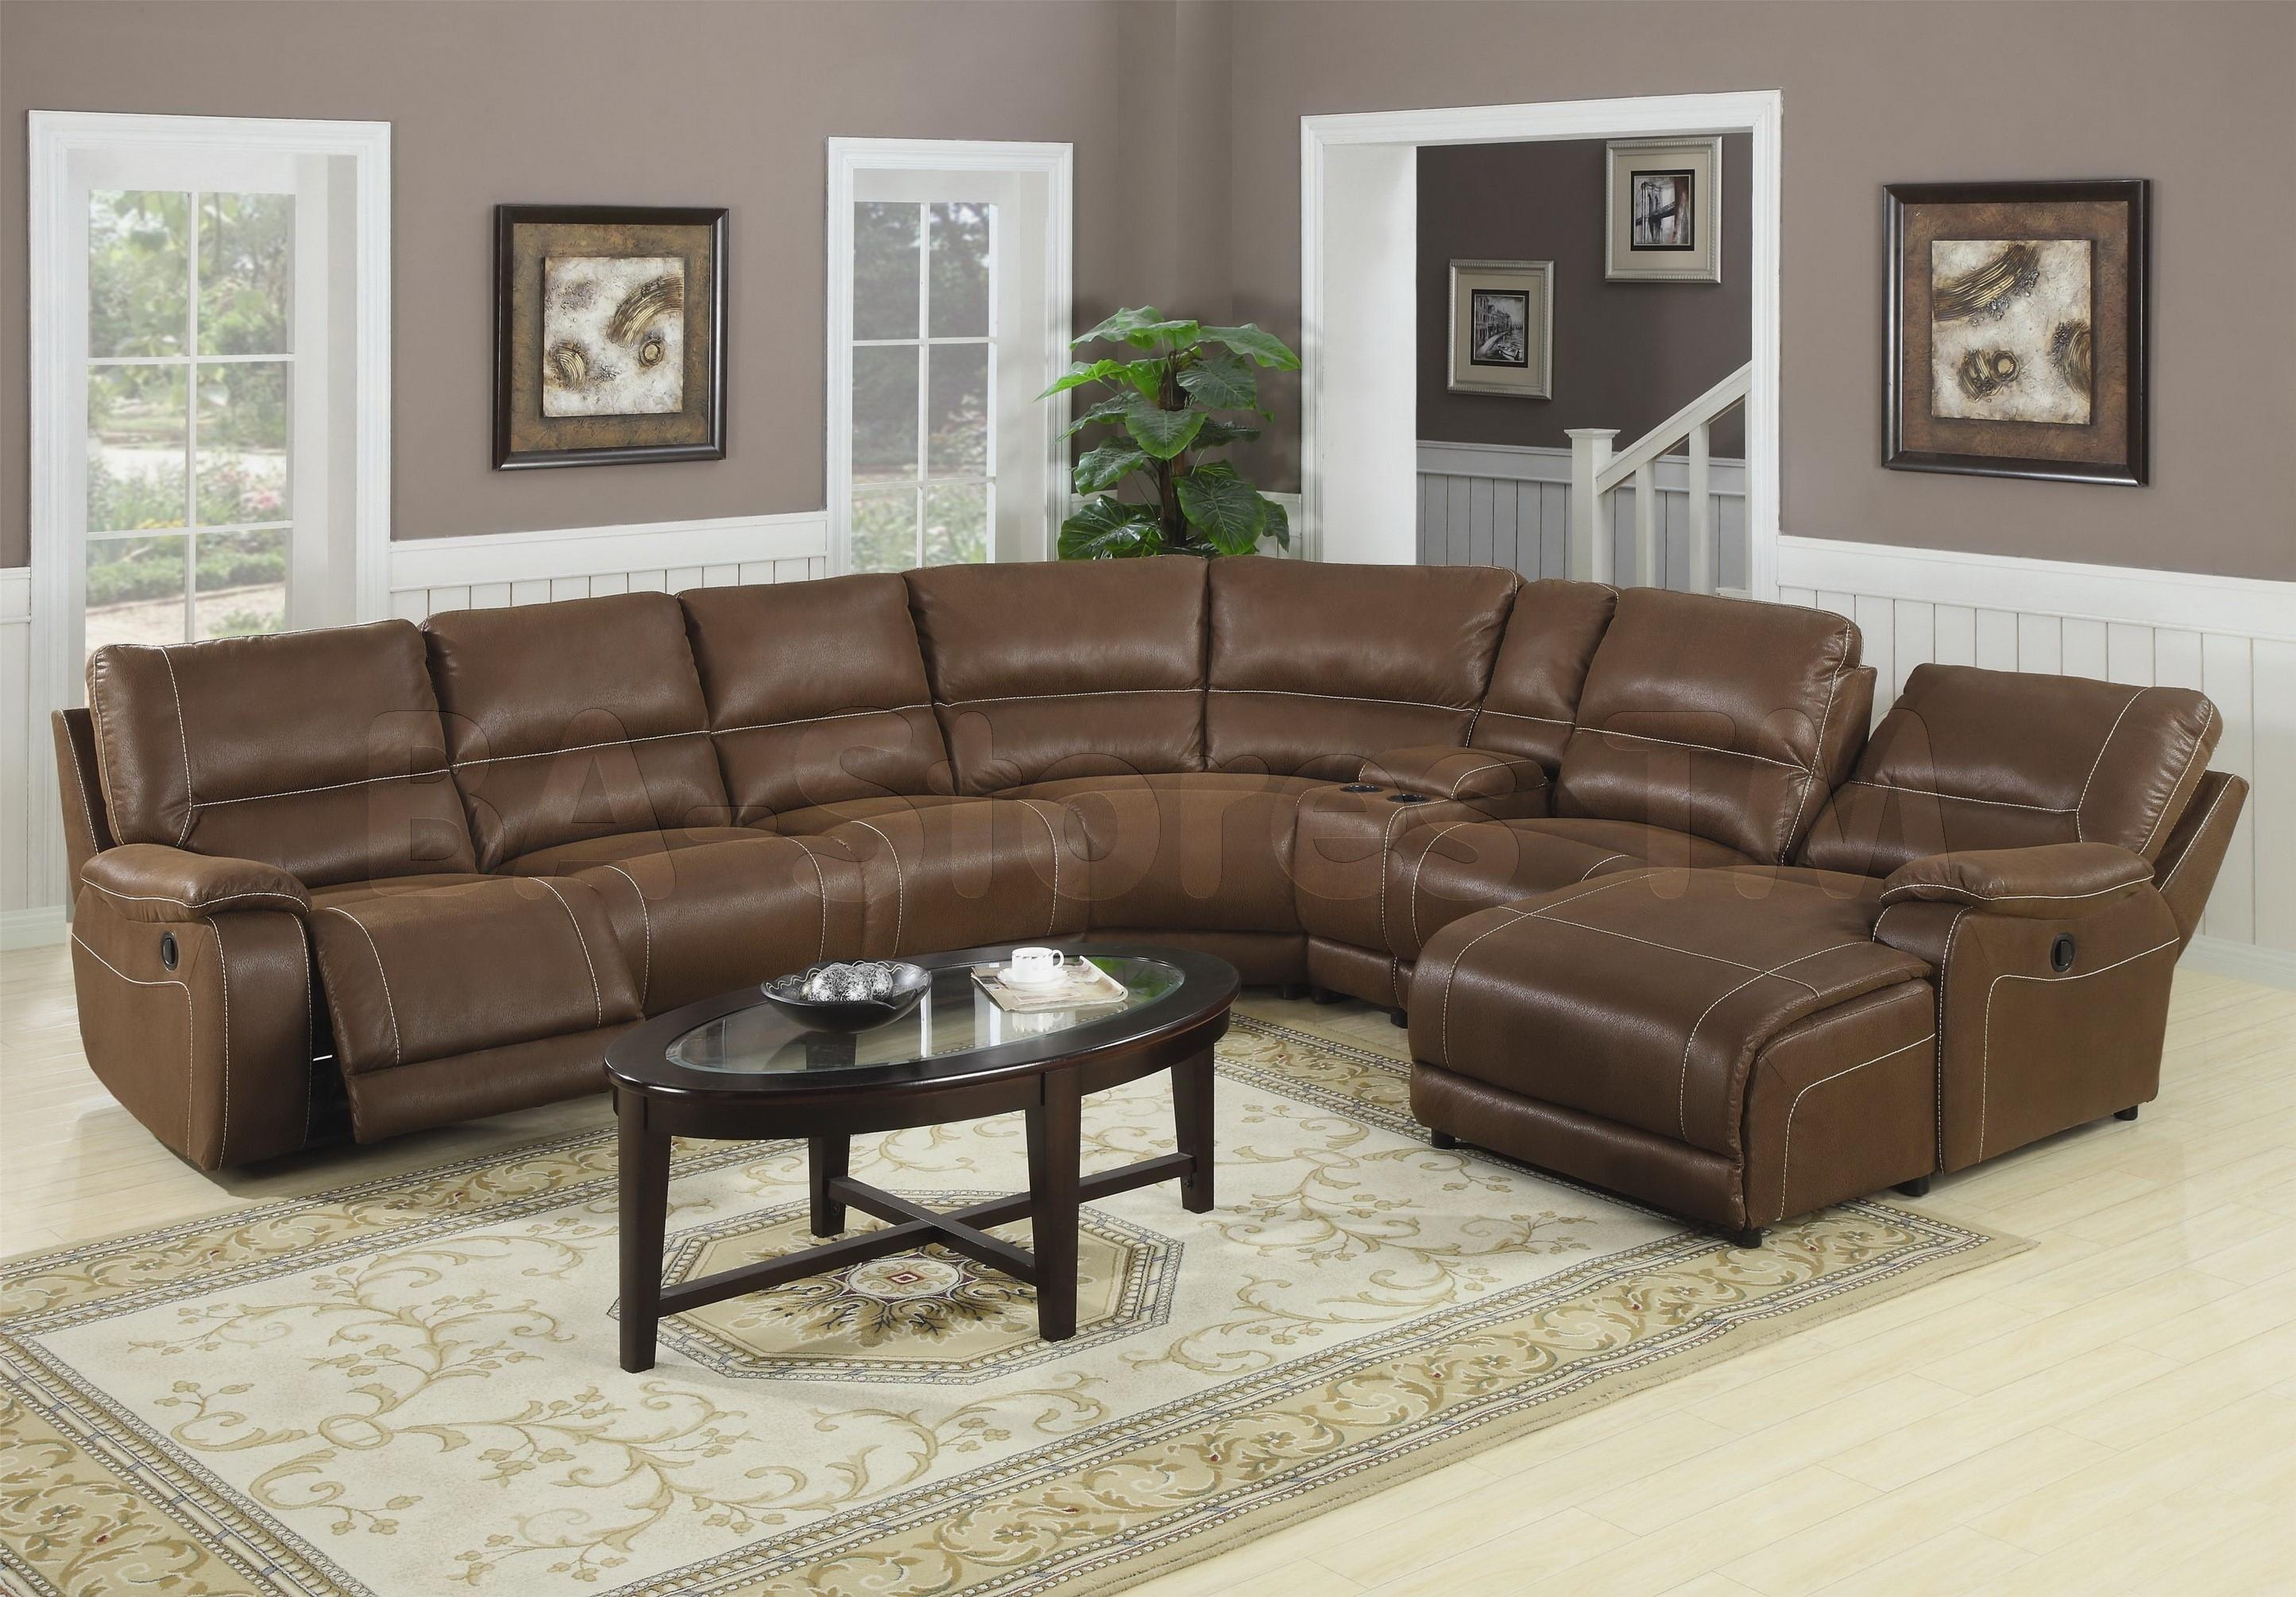 cheap sofas sectional lots furniture with big history recliner beautiful leather sofa and under chairs chaise